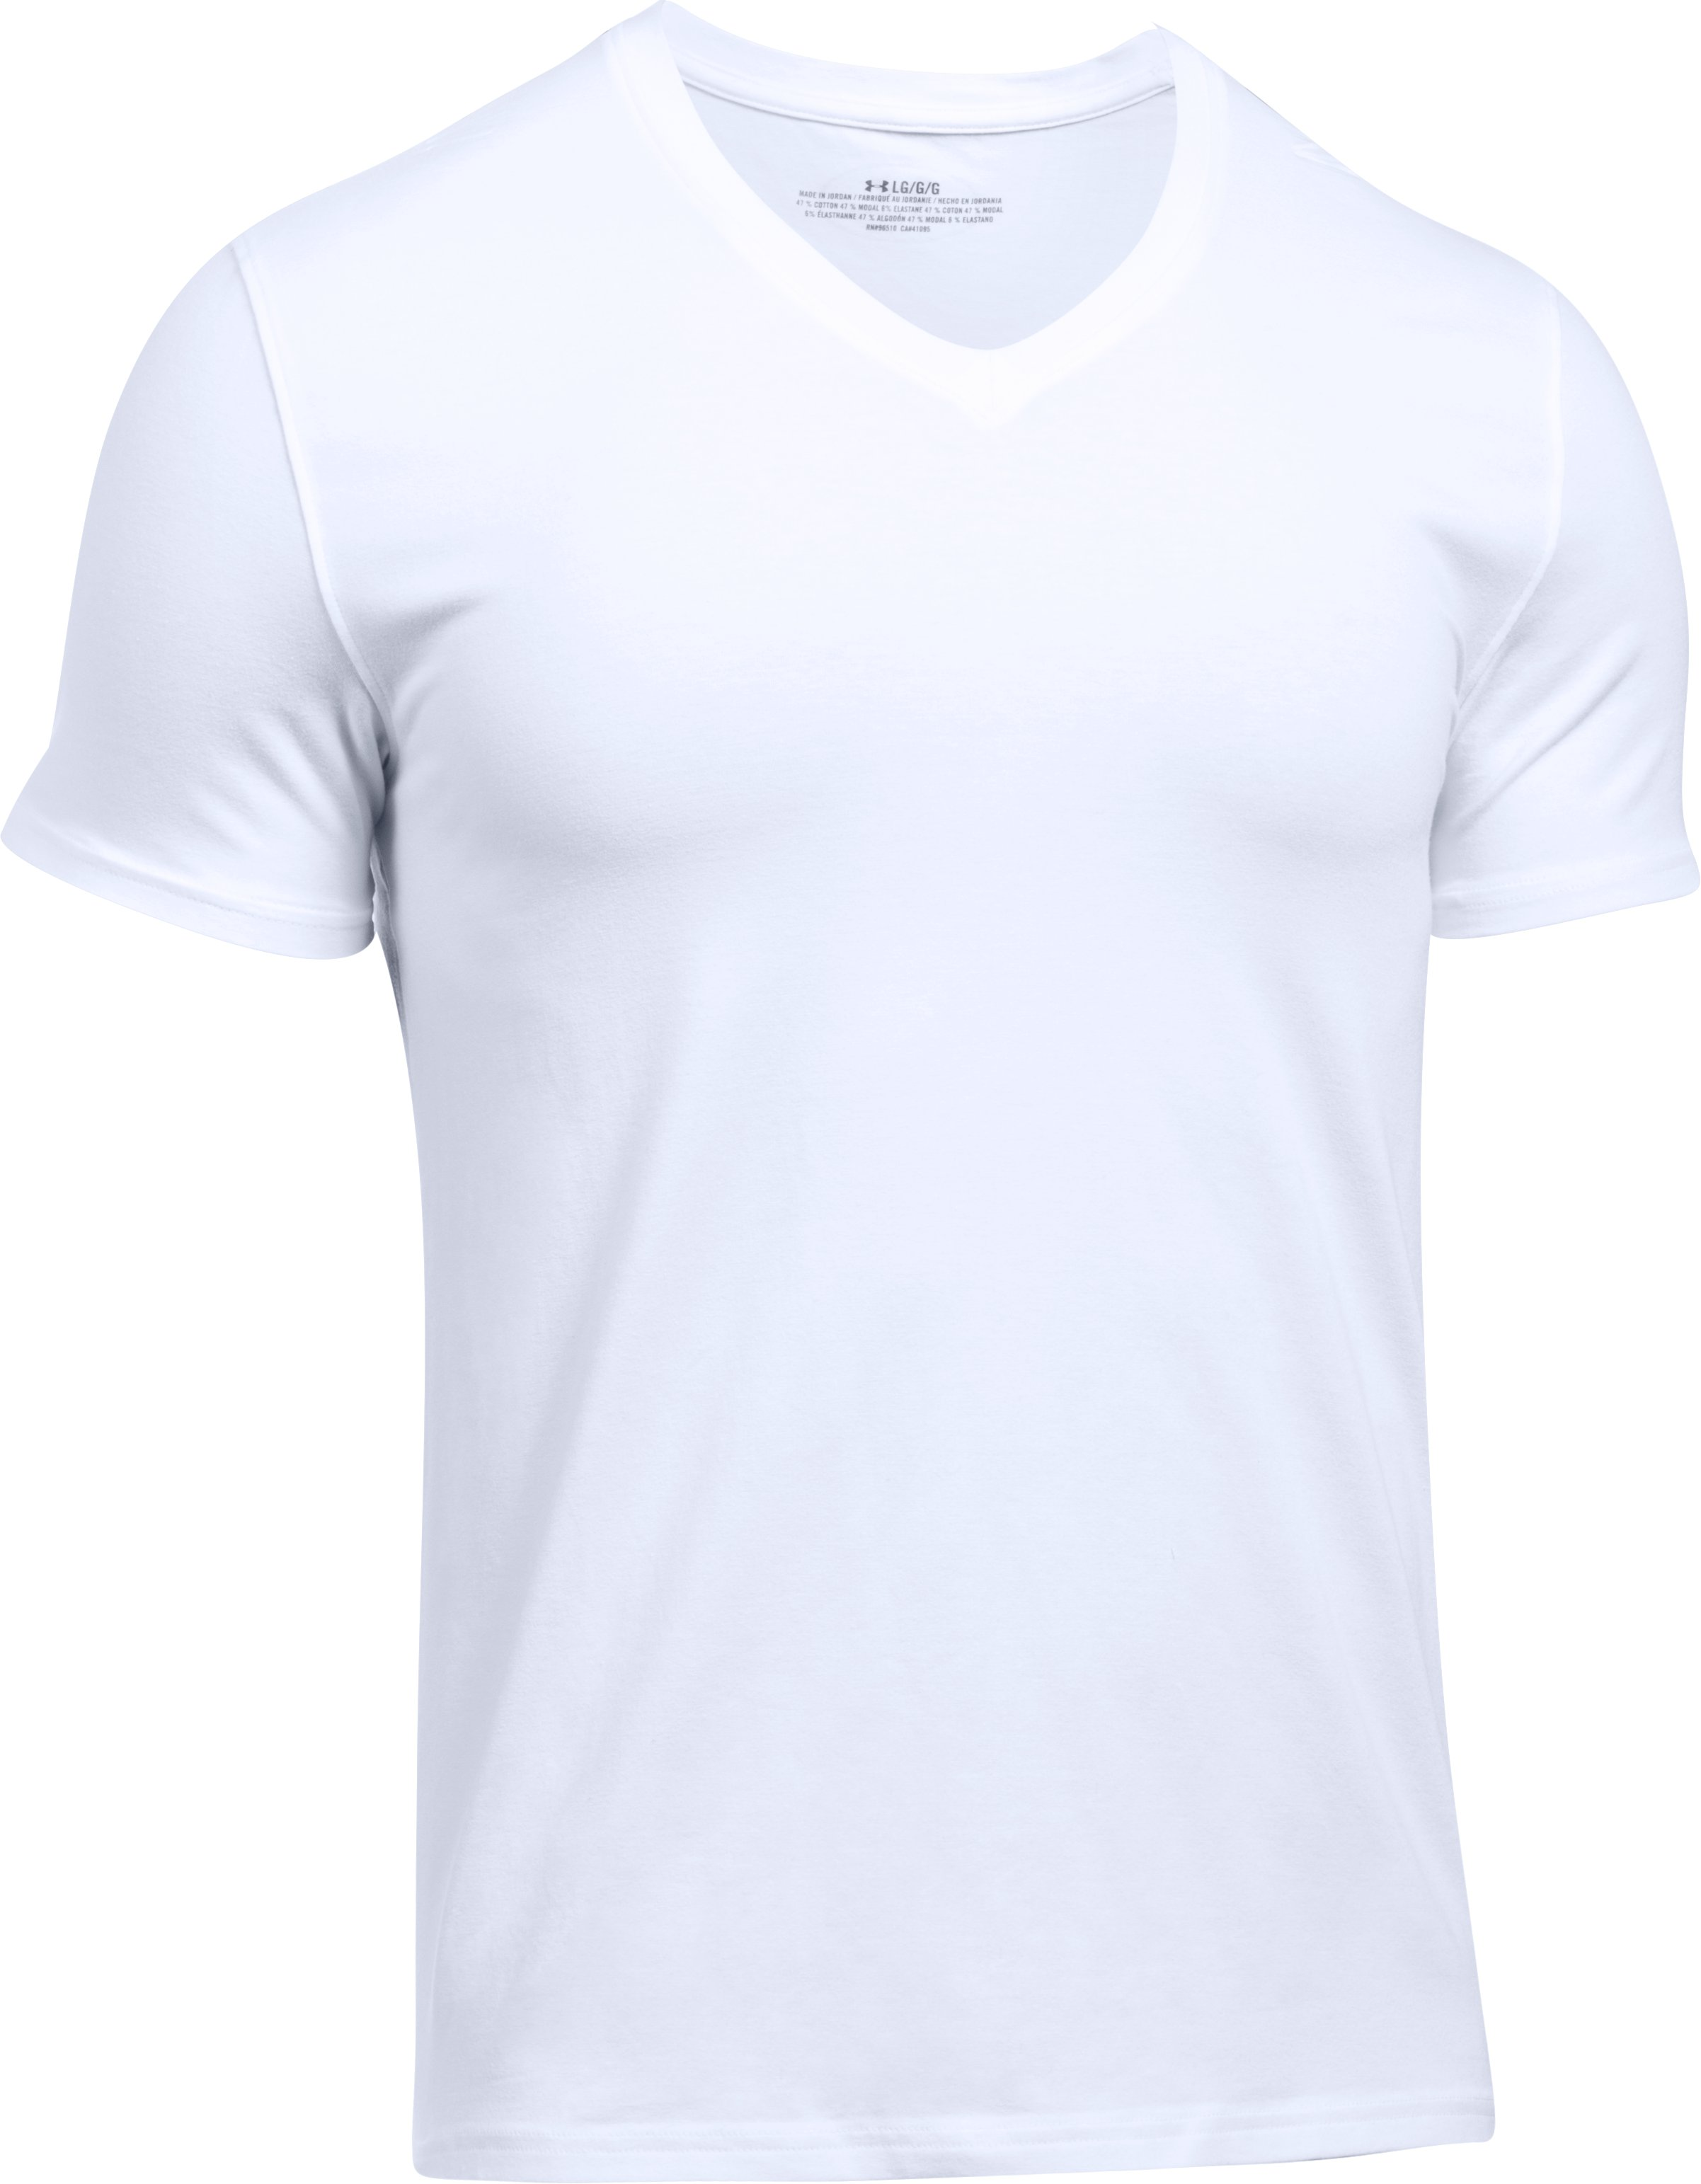 Men's Charged Cotton® V-Neck Undershirt – 2-Pack, White, undefined